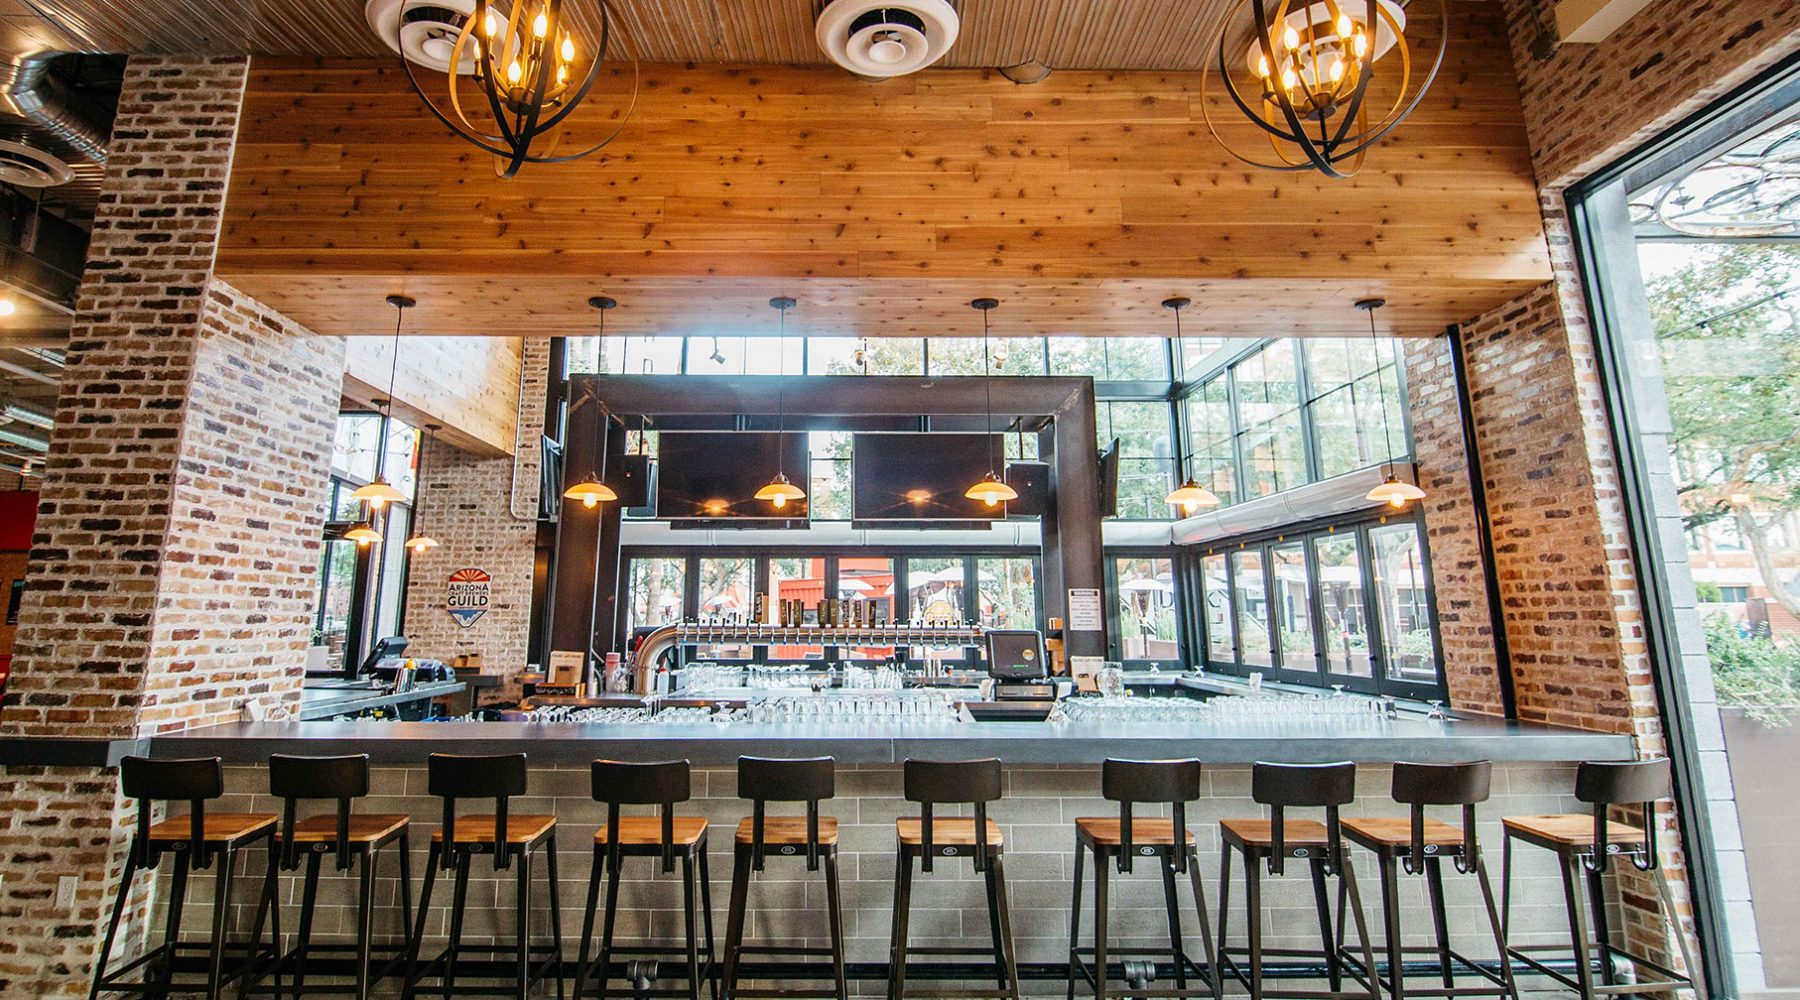 Top 15 Tips for Craft Brewery and Craft Beer Bar Success